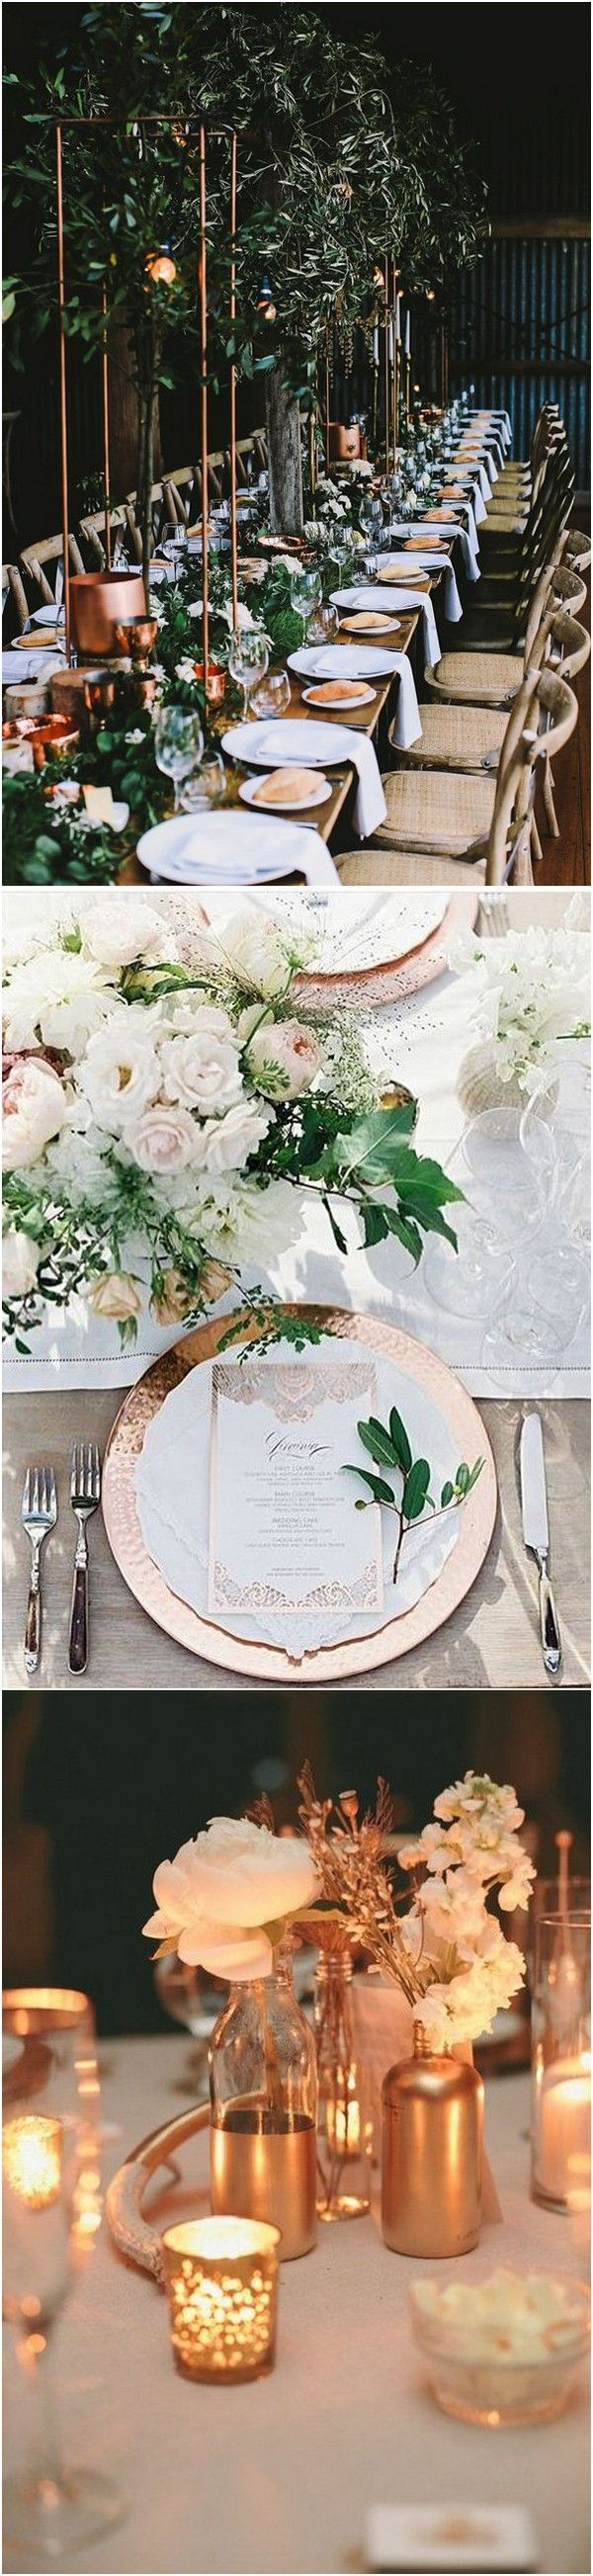 industrial garden wedding reception ideas with accents of copper_